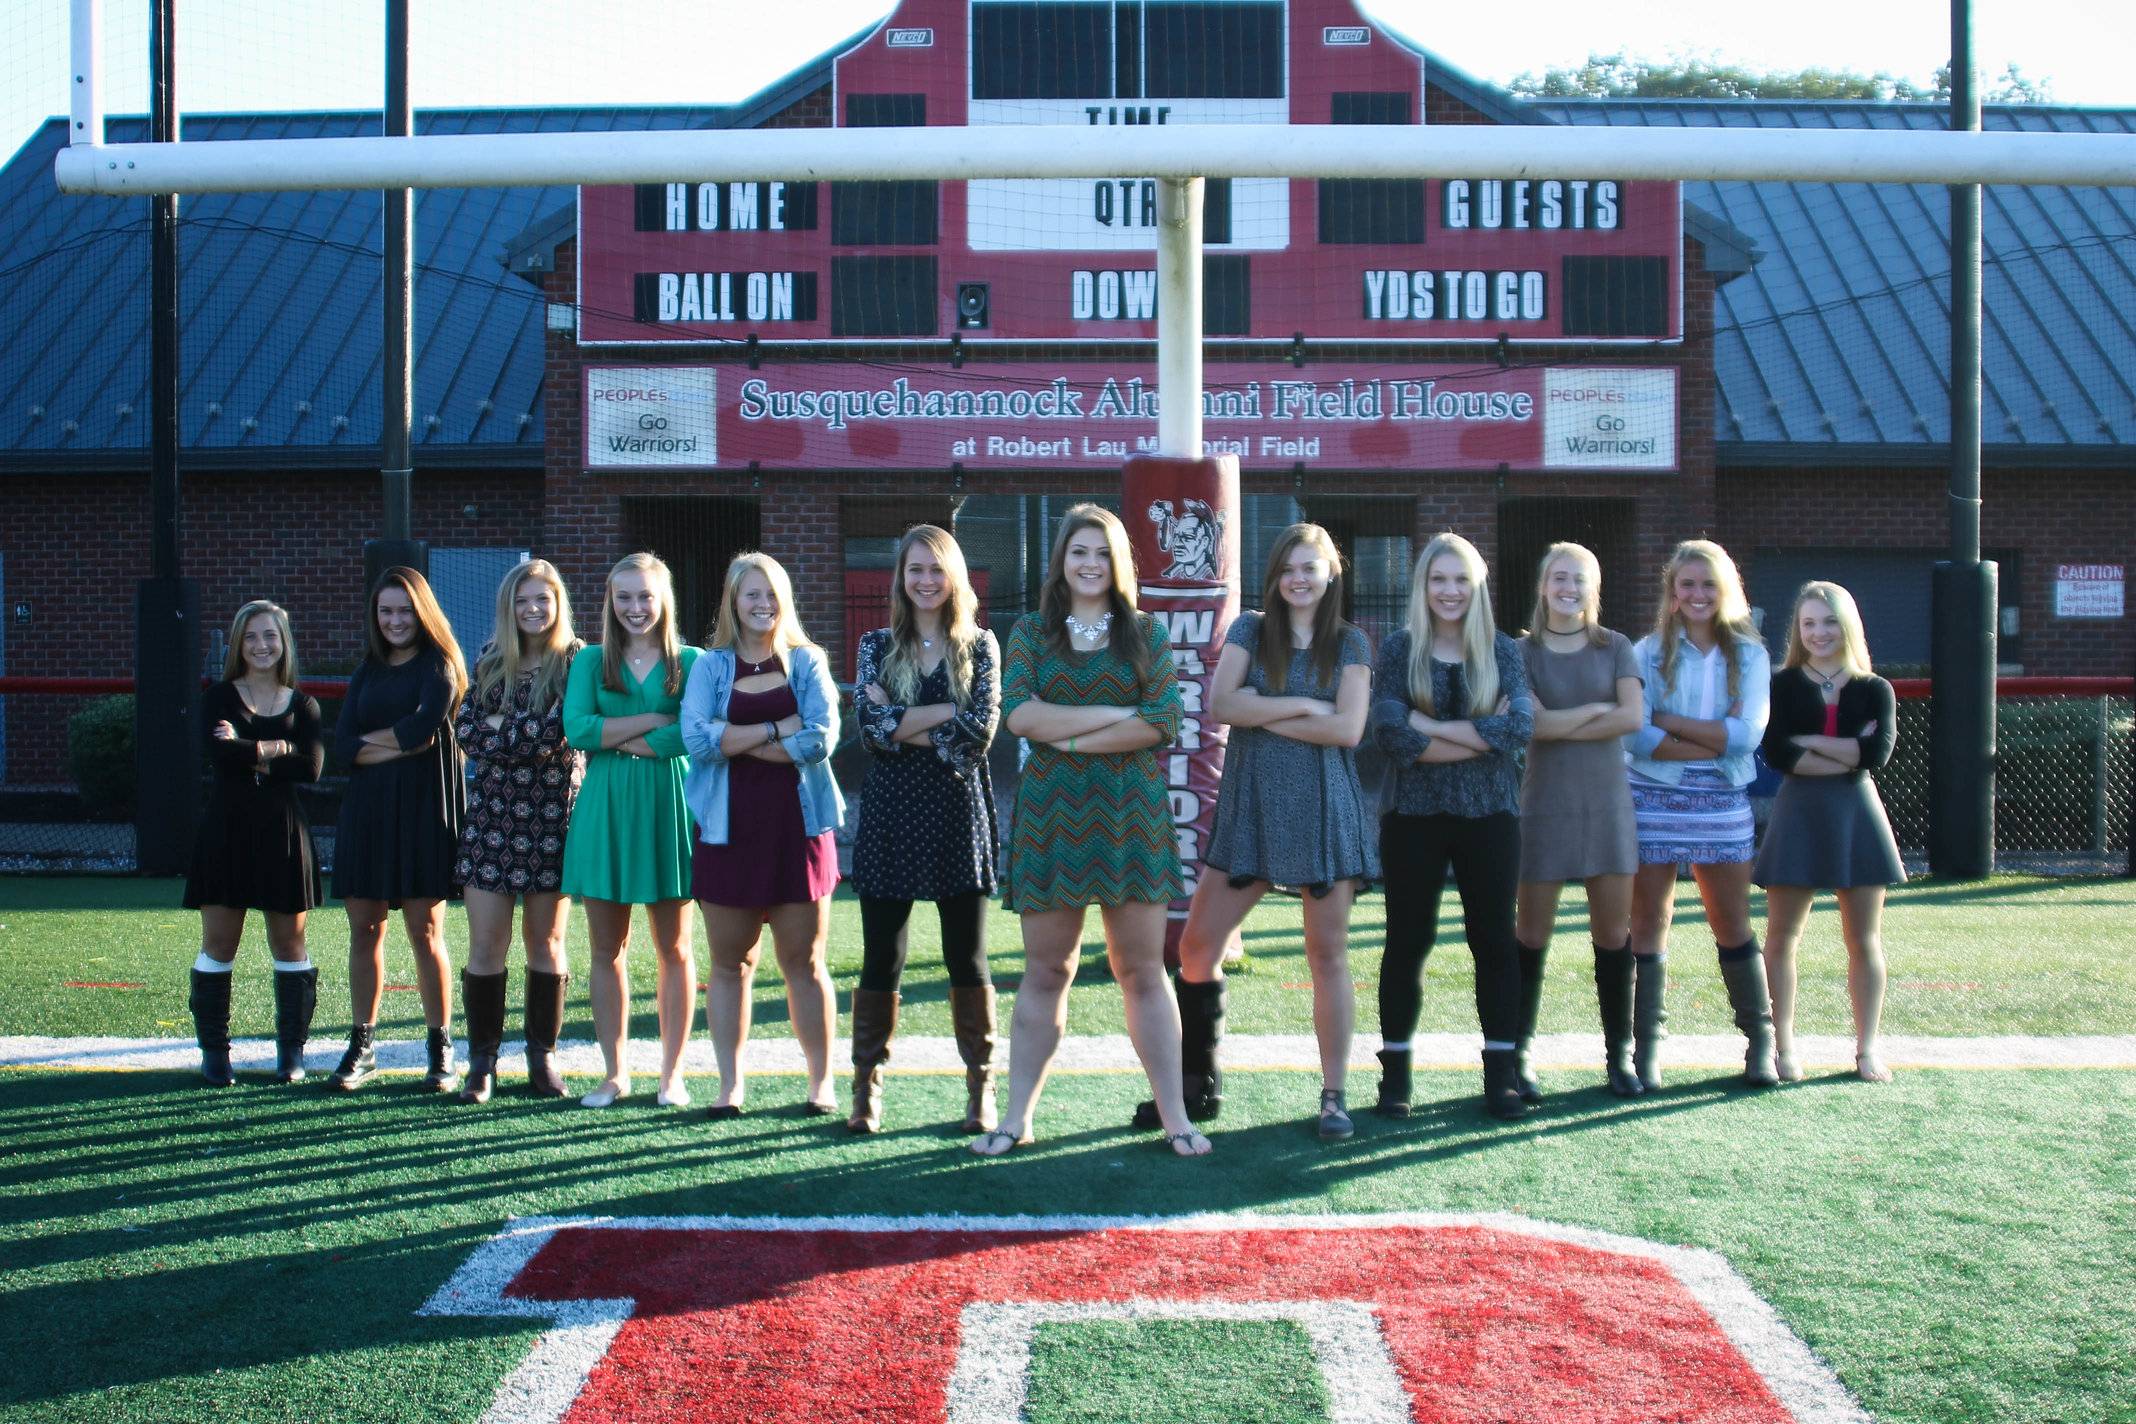 The 2016 Homecoming court poses on the feild. Photo by: Wade Bowers.